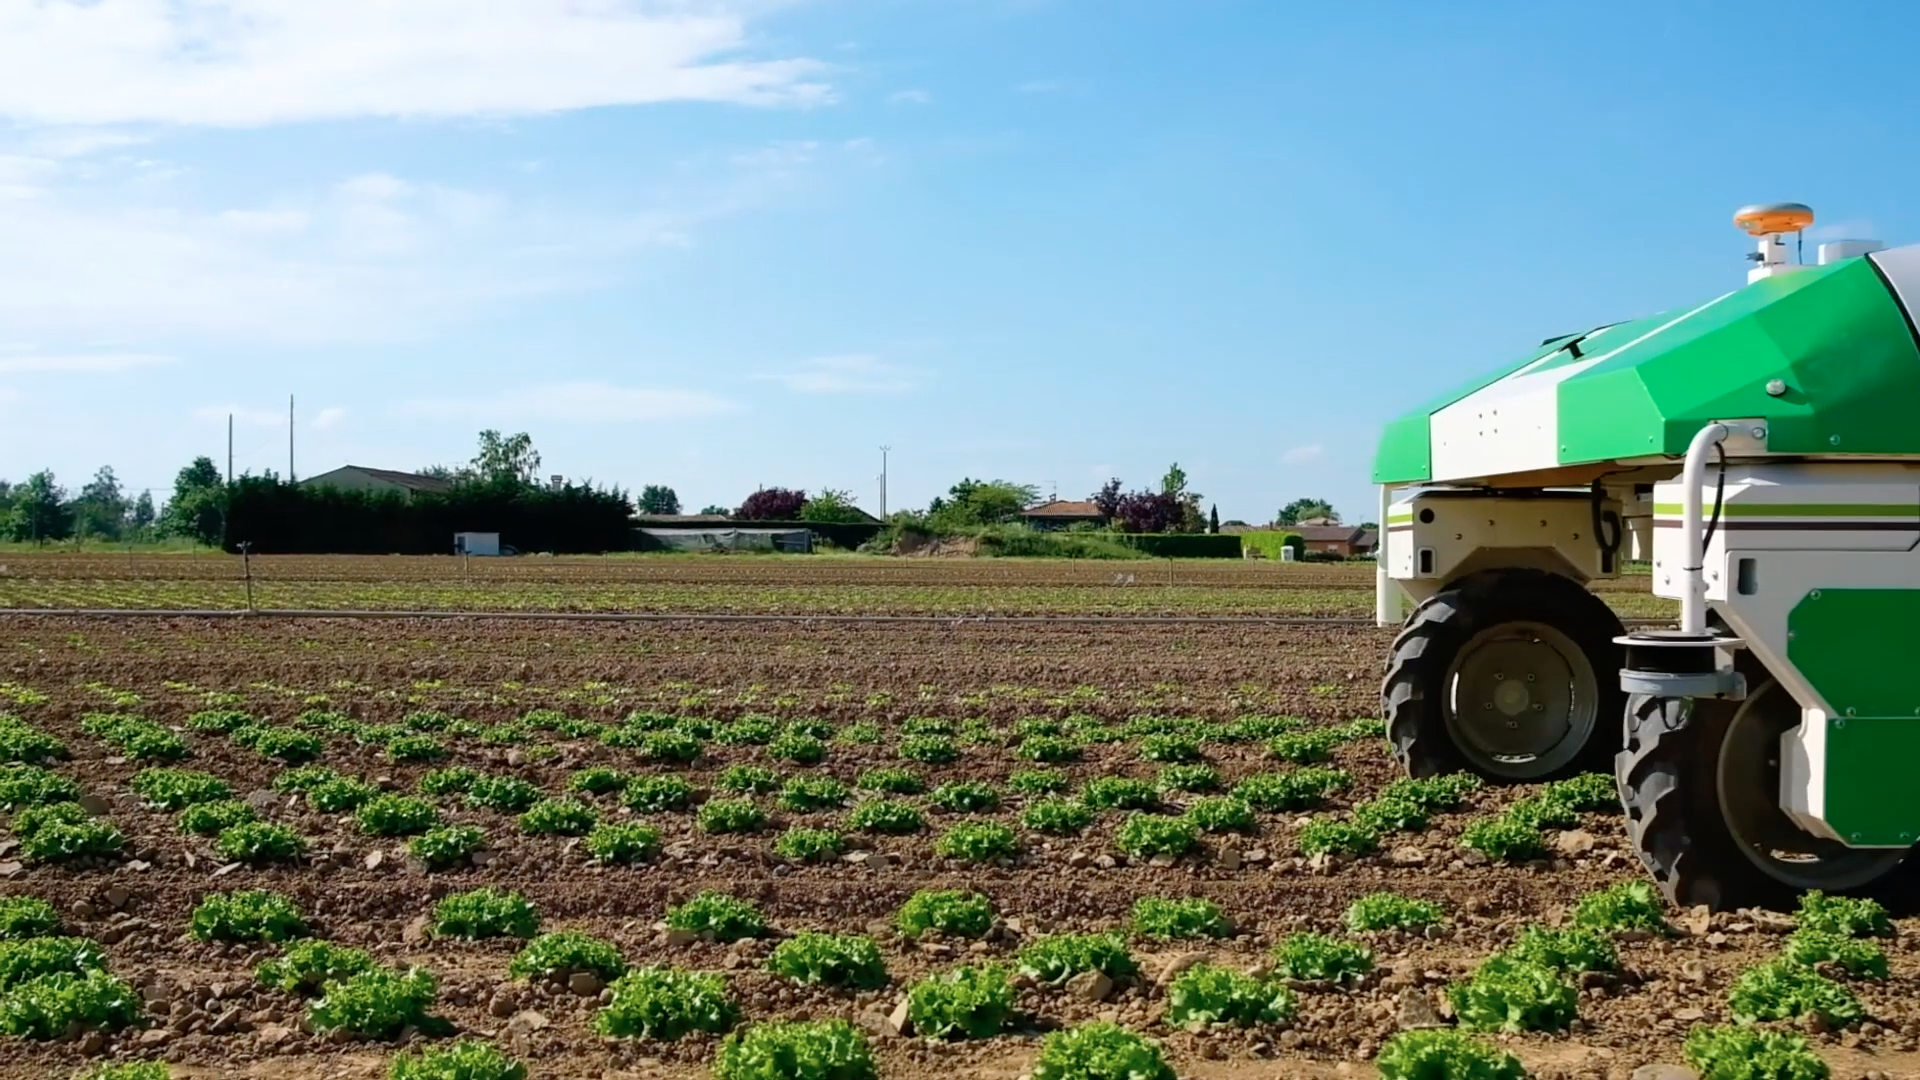 With the most popular herbicides falling from favor, can robots dispatch with our weeds? Credit: Naio Technologies, April 2019